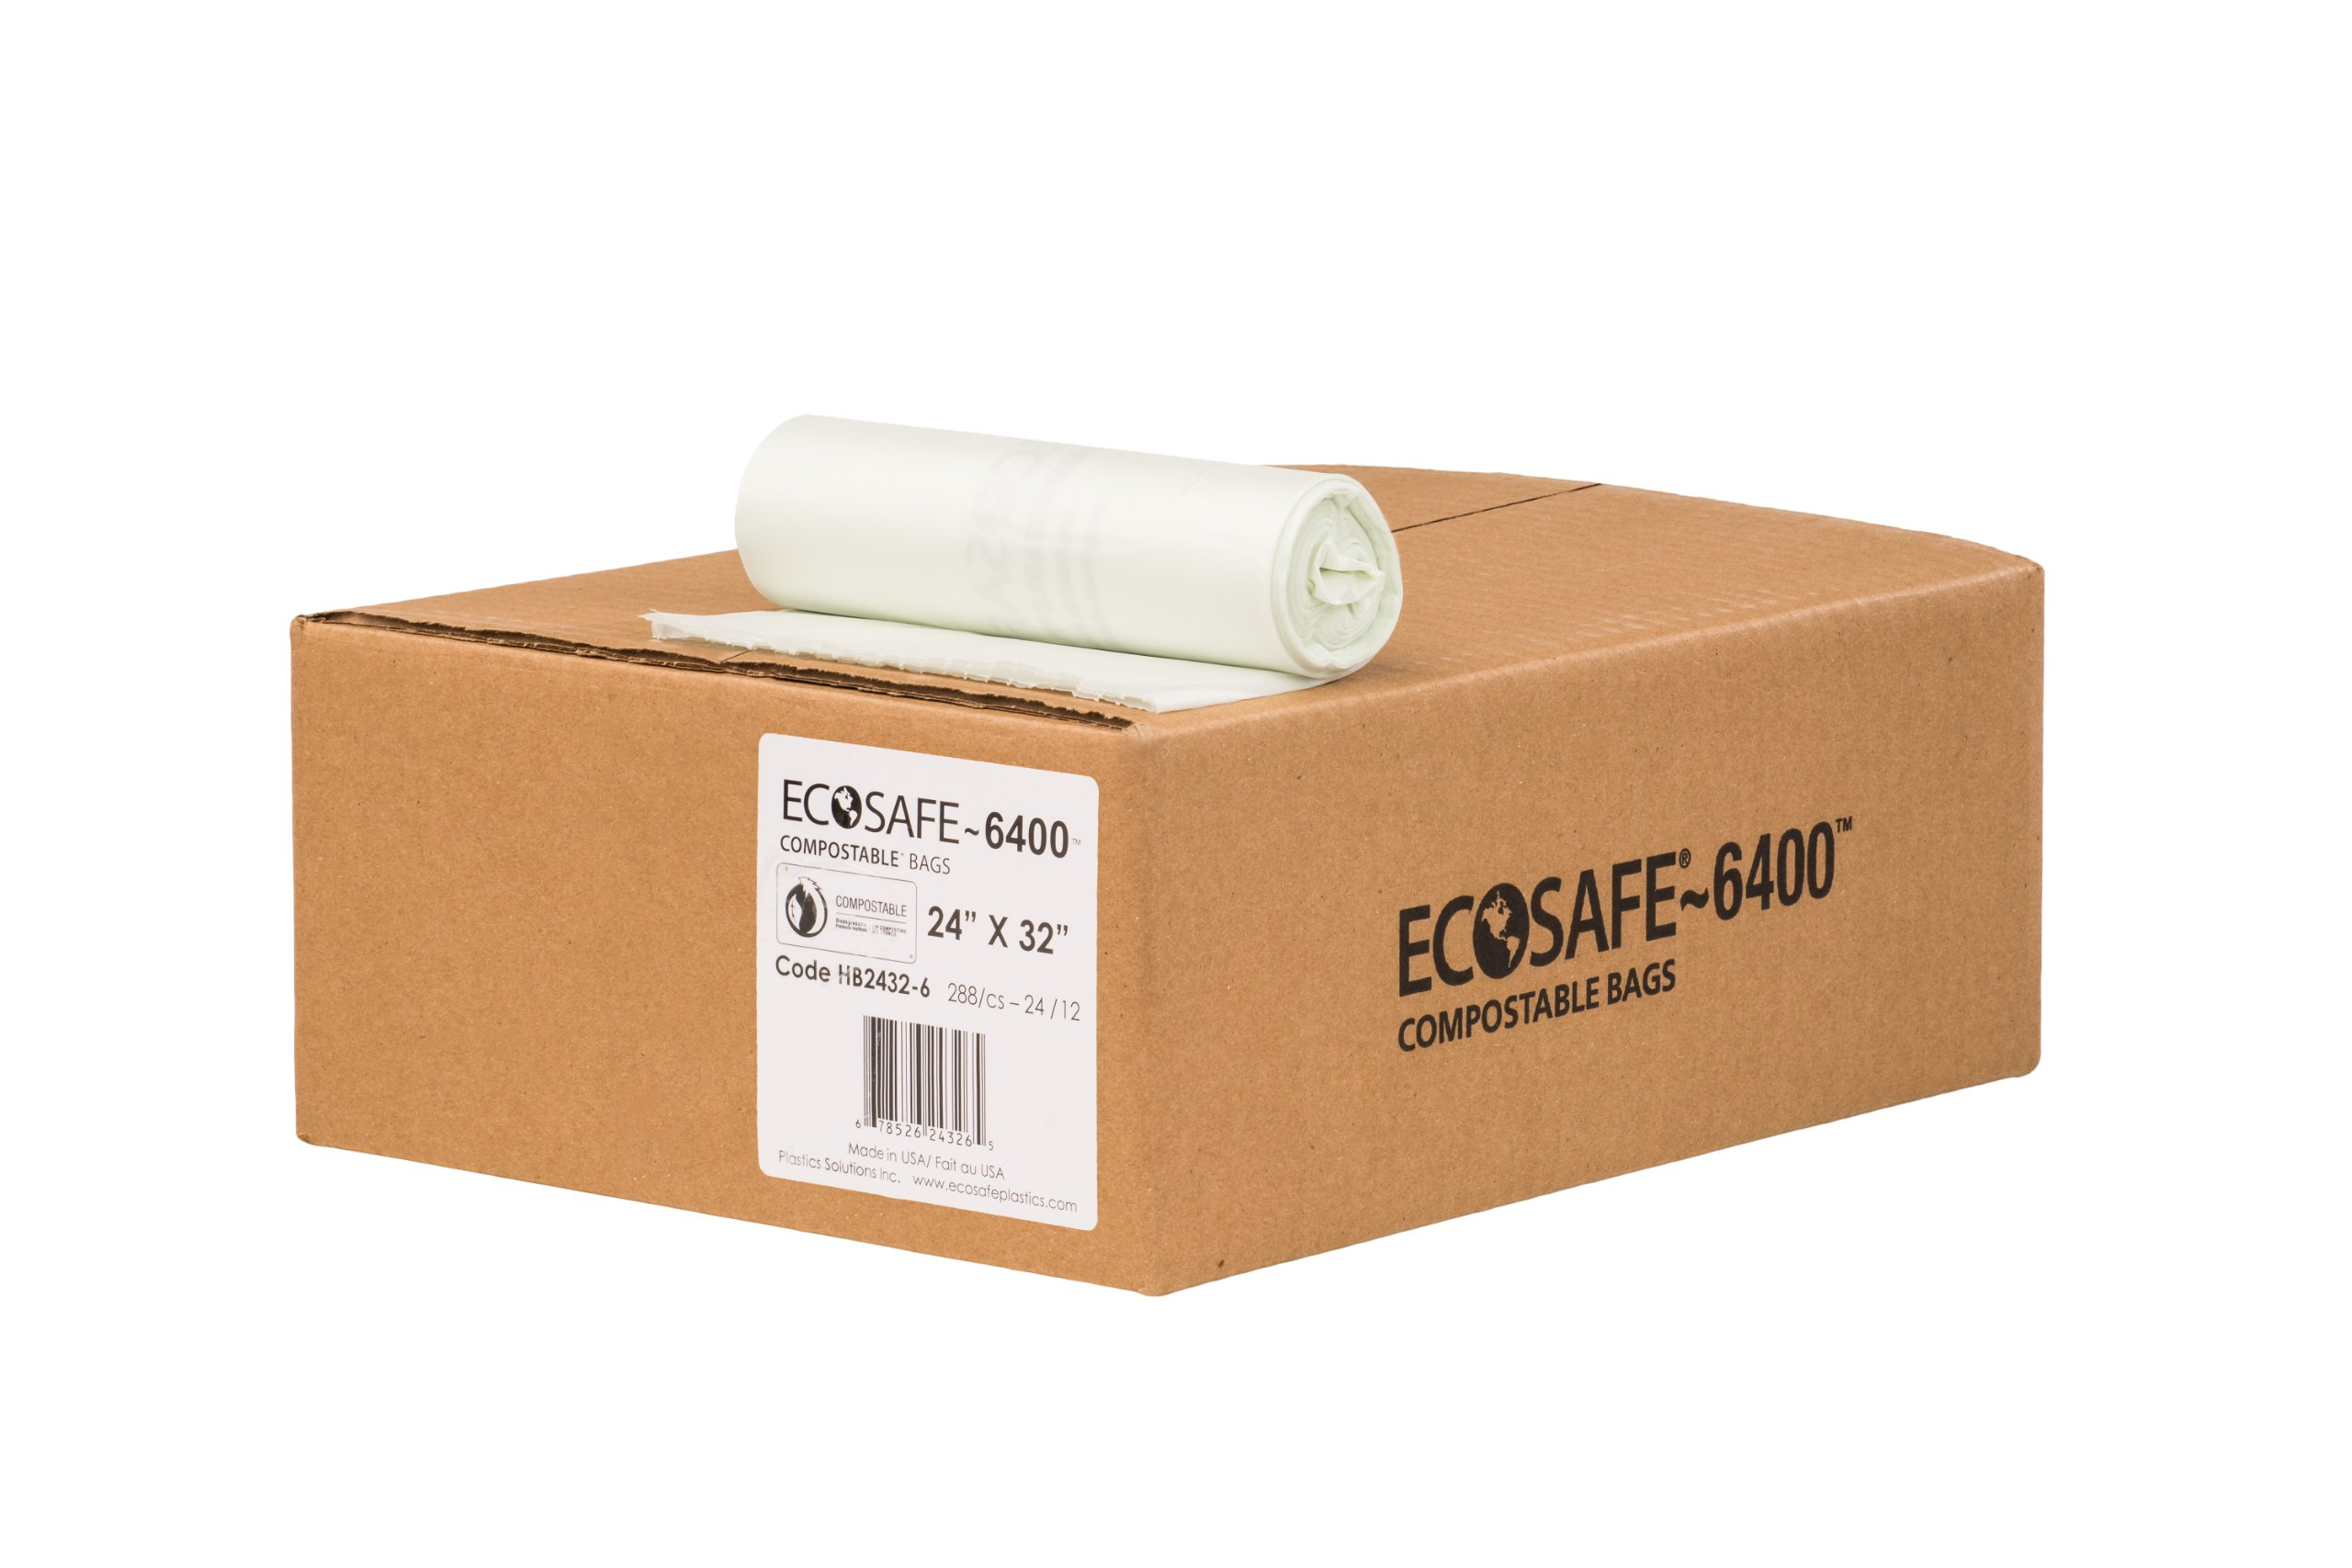 EcoSafe-6400 HB2432-6 Compostable Bag, Certified Compostable, 13-Gallon, Green (Pack of 288) by EcoSafe